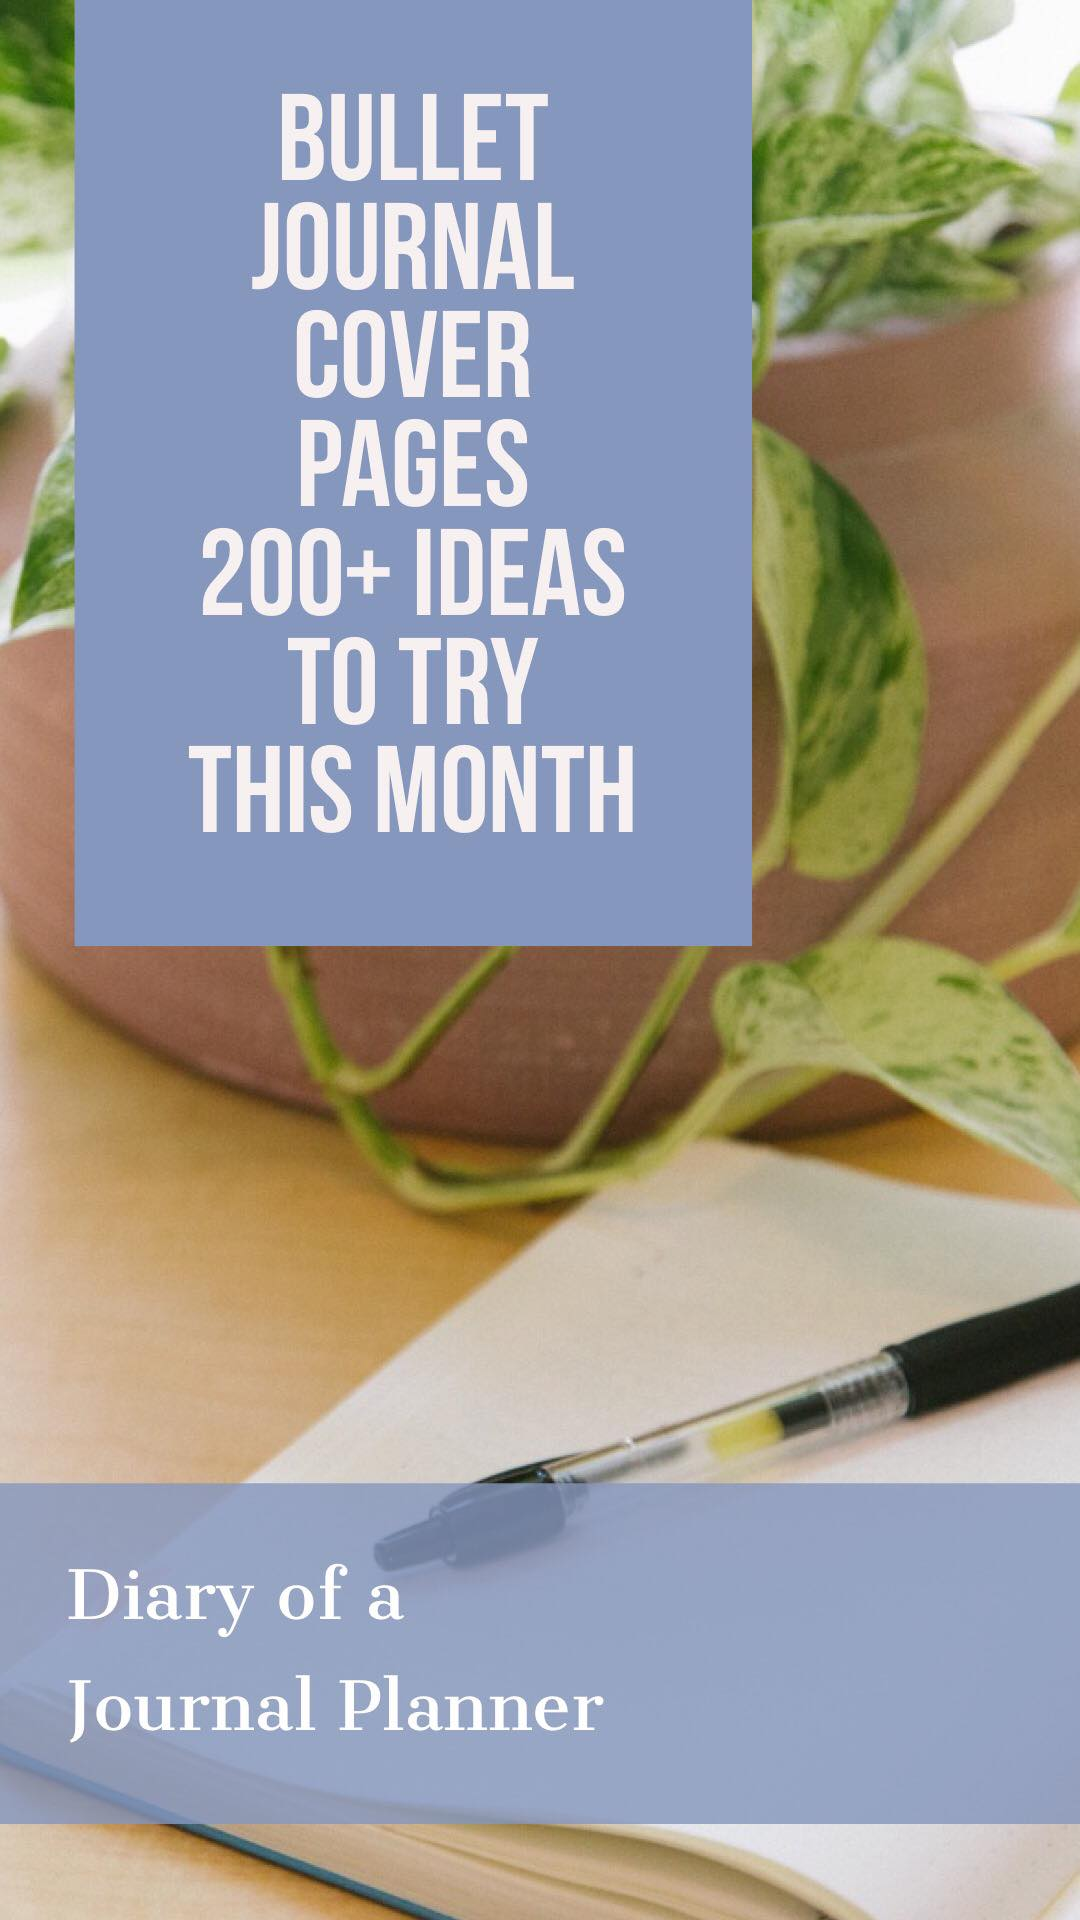 Massive list of Bullet journal cover page ideas to try this month